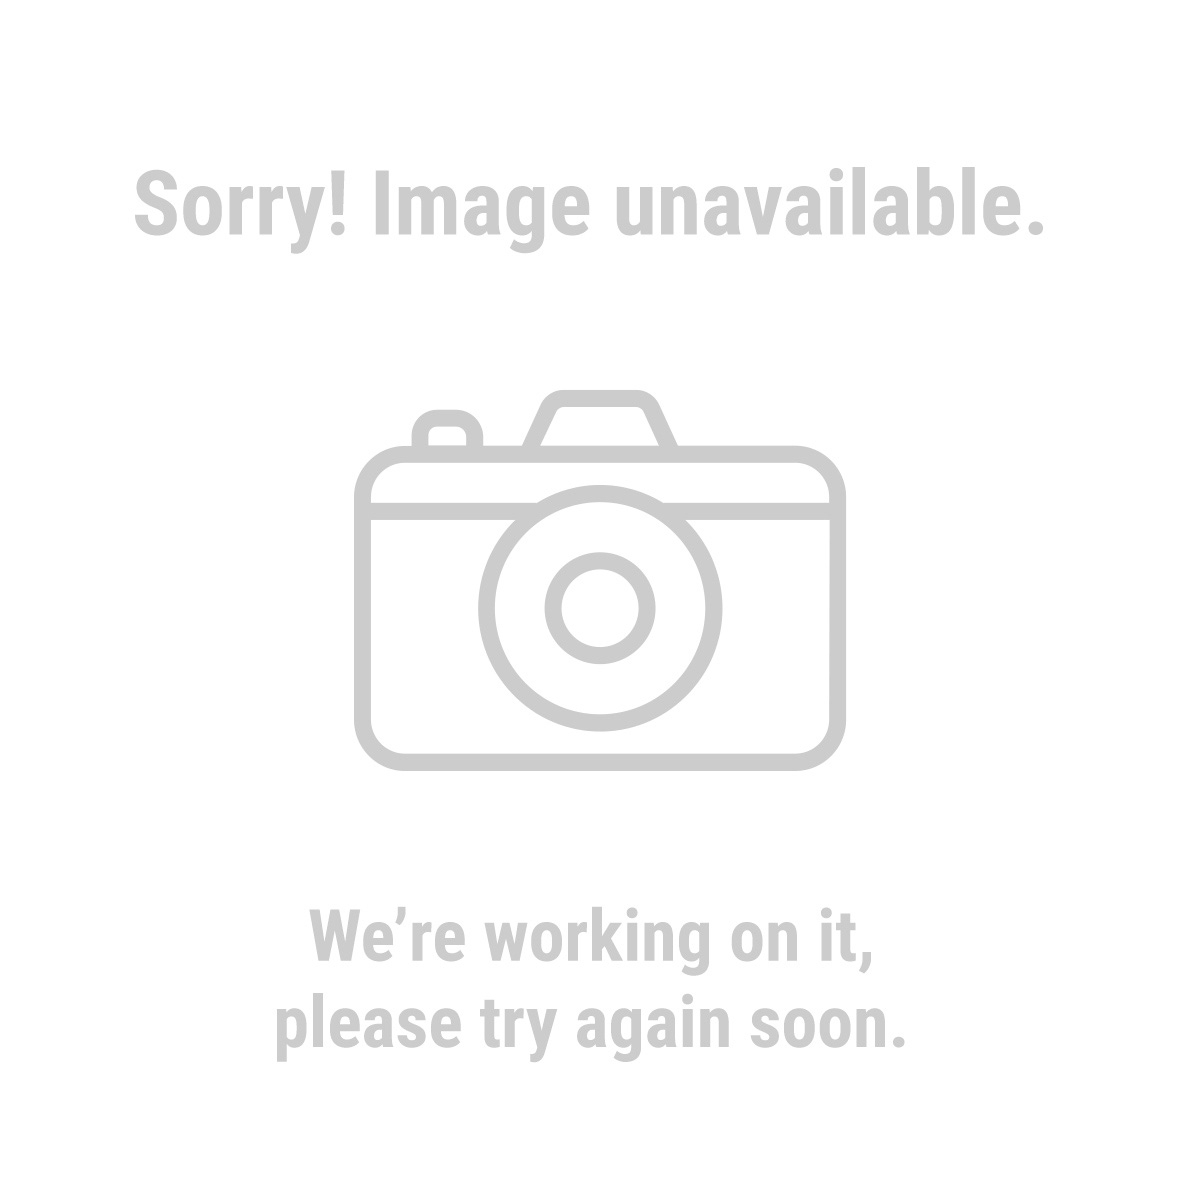 "CROSS & BECKER 39629 3"" Chip Brush"